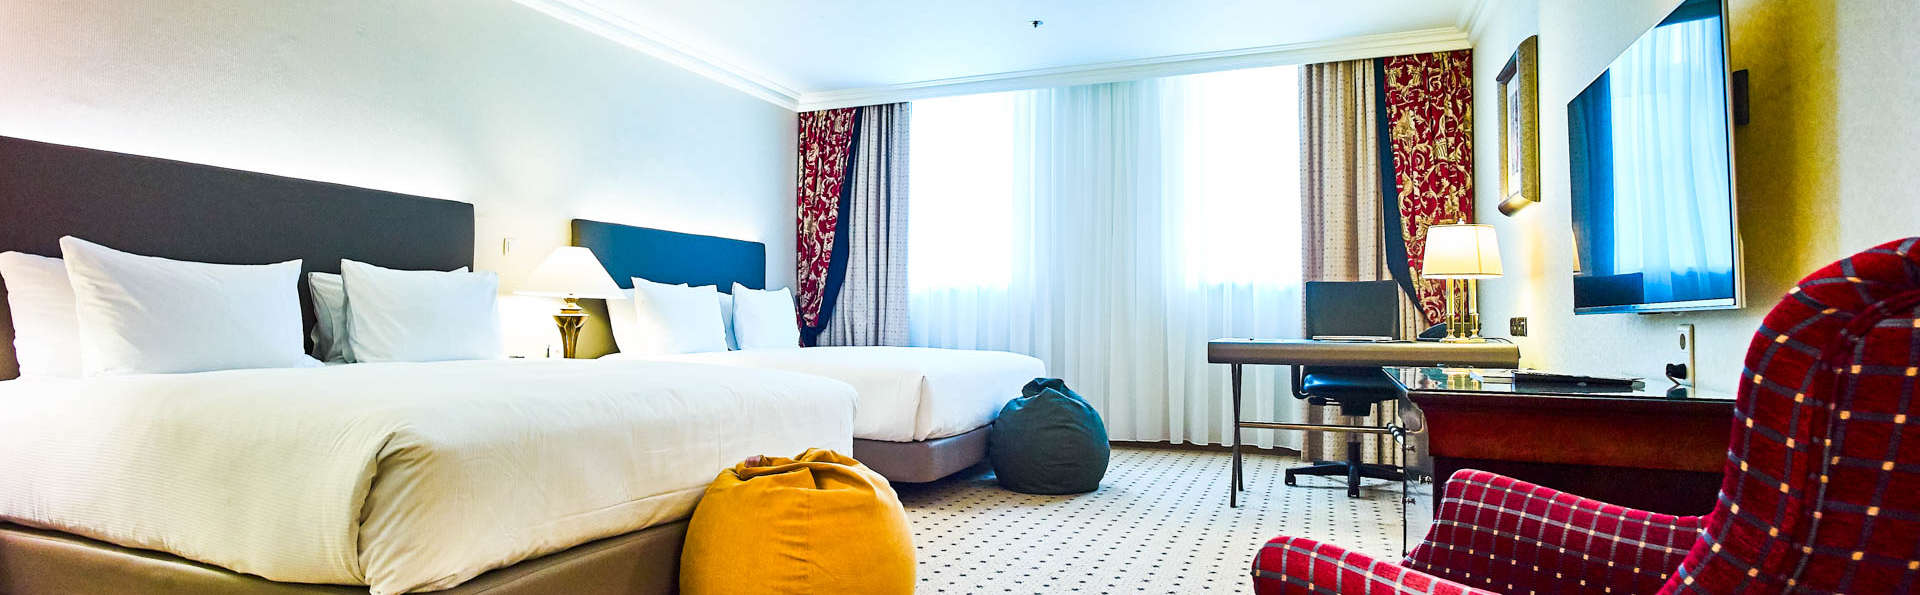 Hilton Antwerp Old Town - EDIT_N2_ROOM.jpg